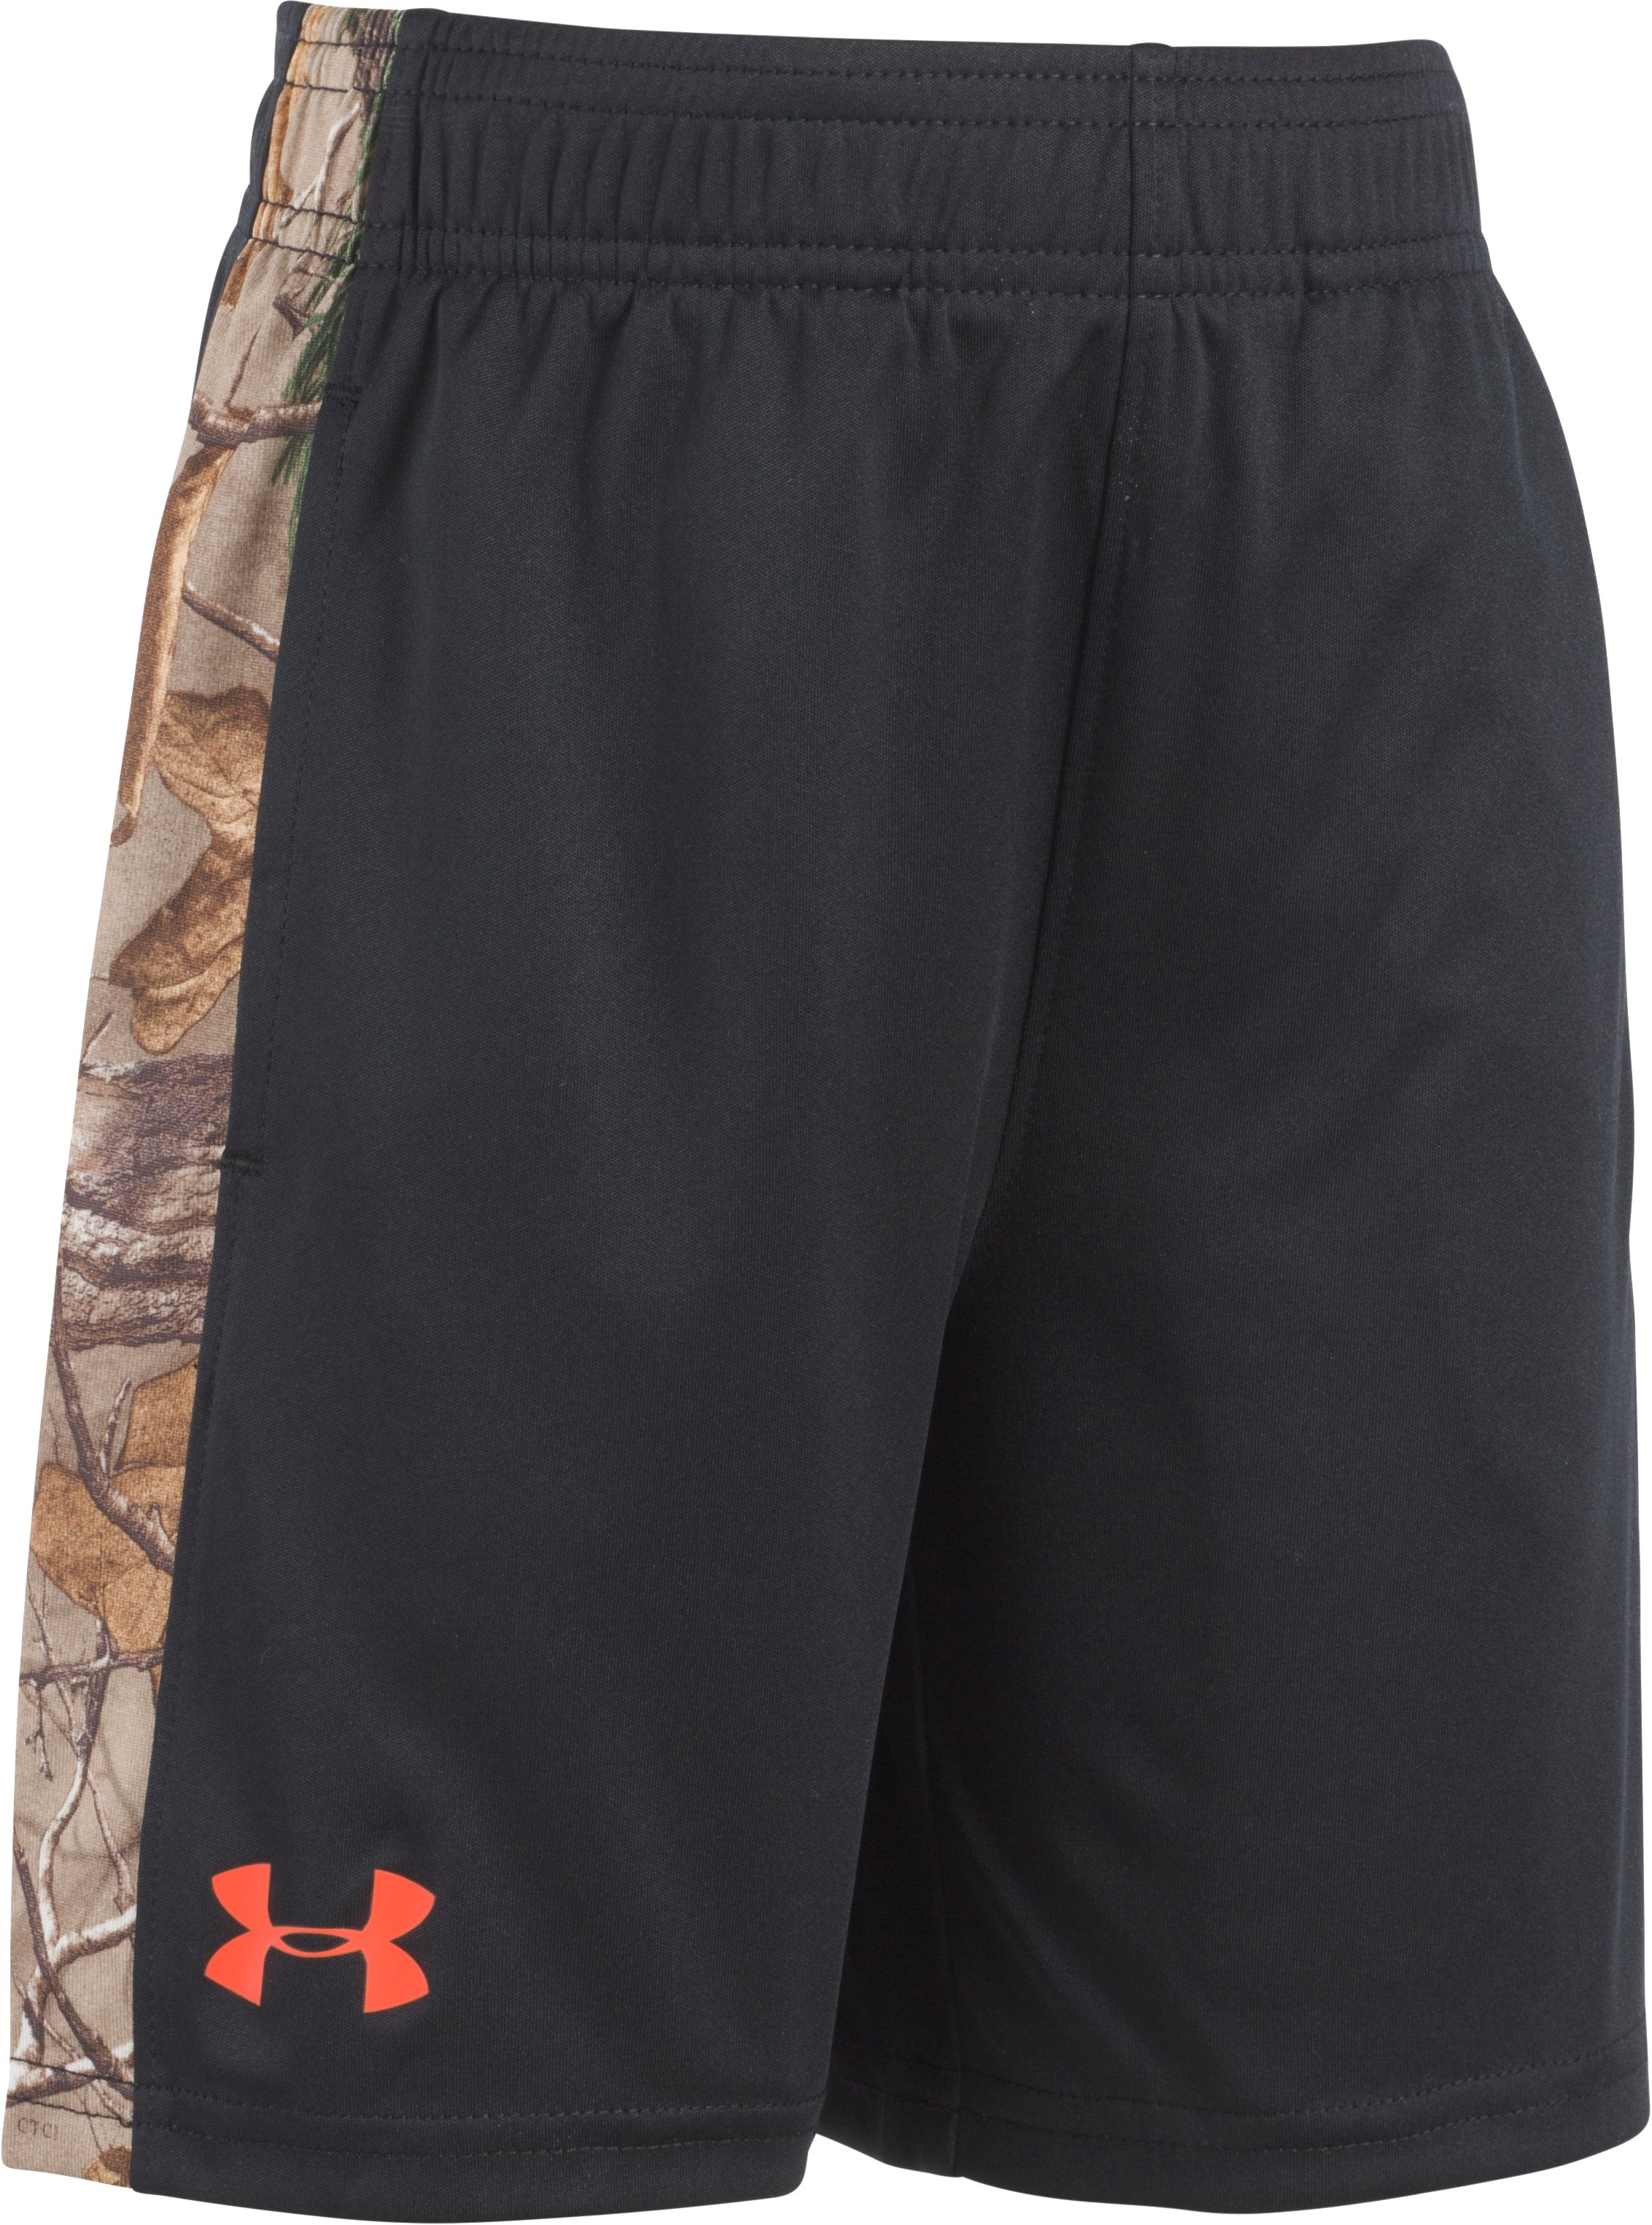 Boys' Toddler UA Camo Eliminator Shorts, Assorted